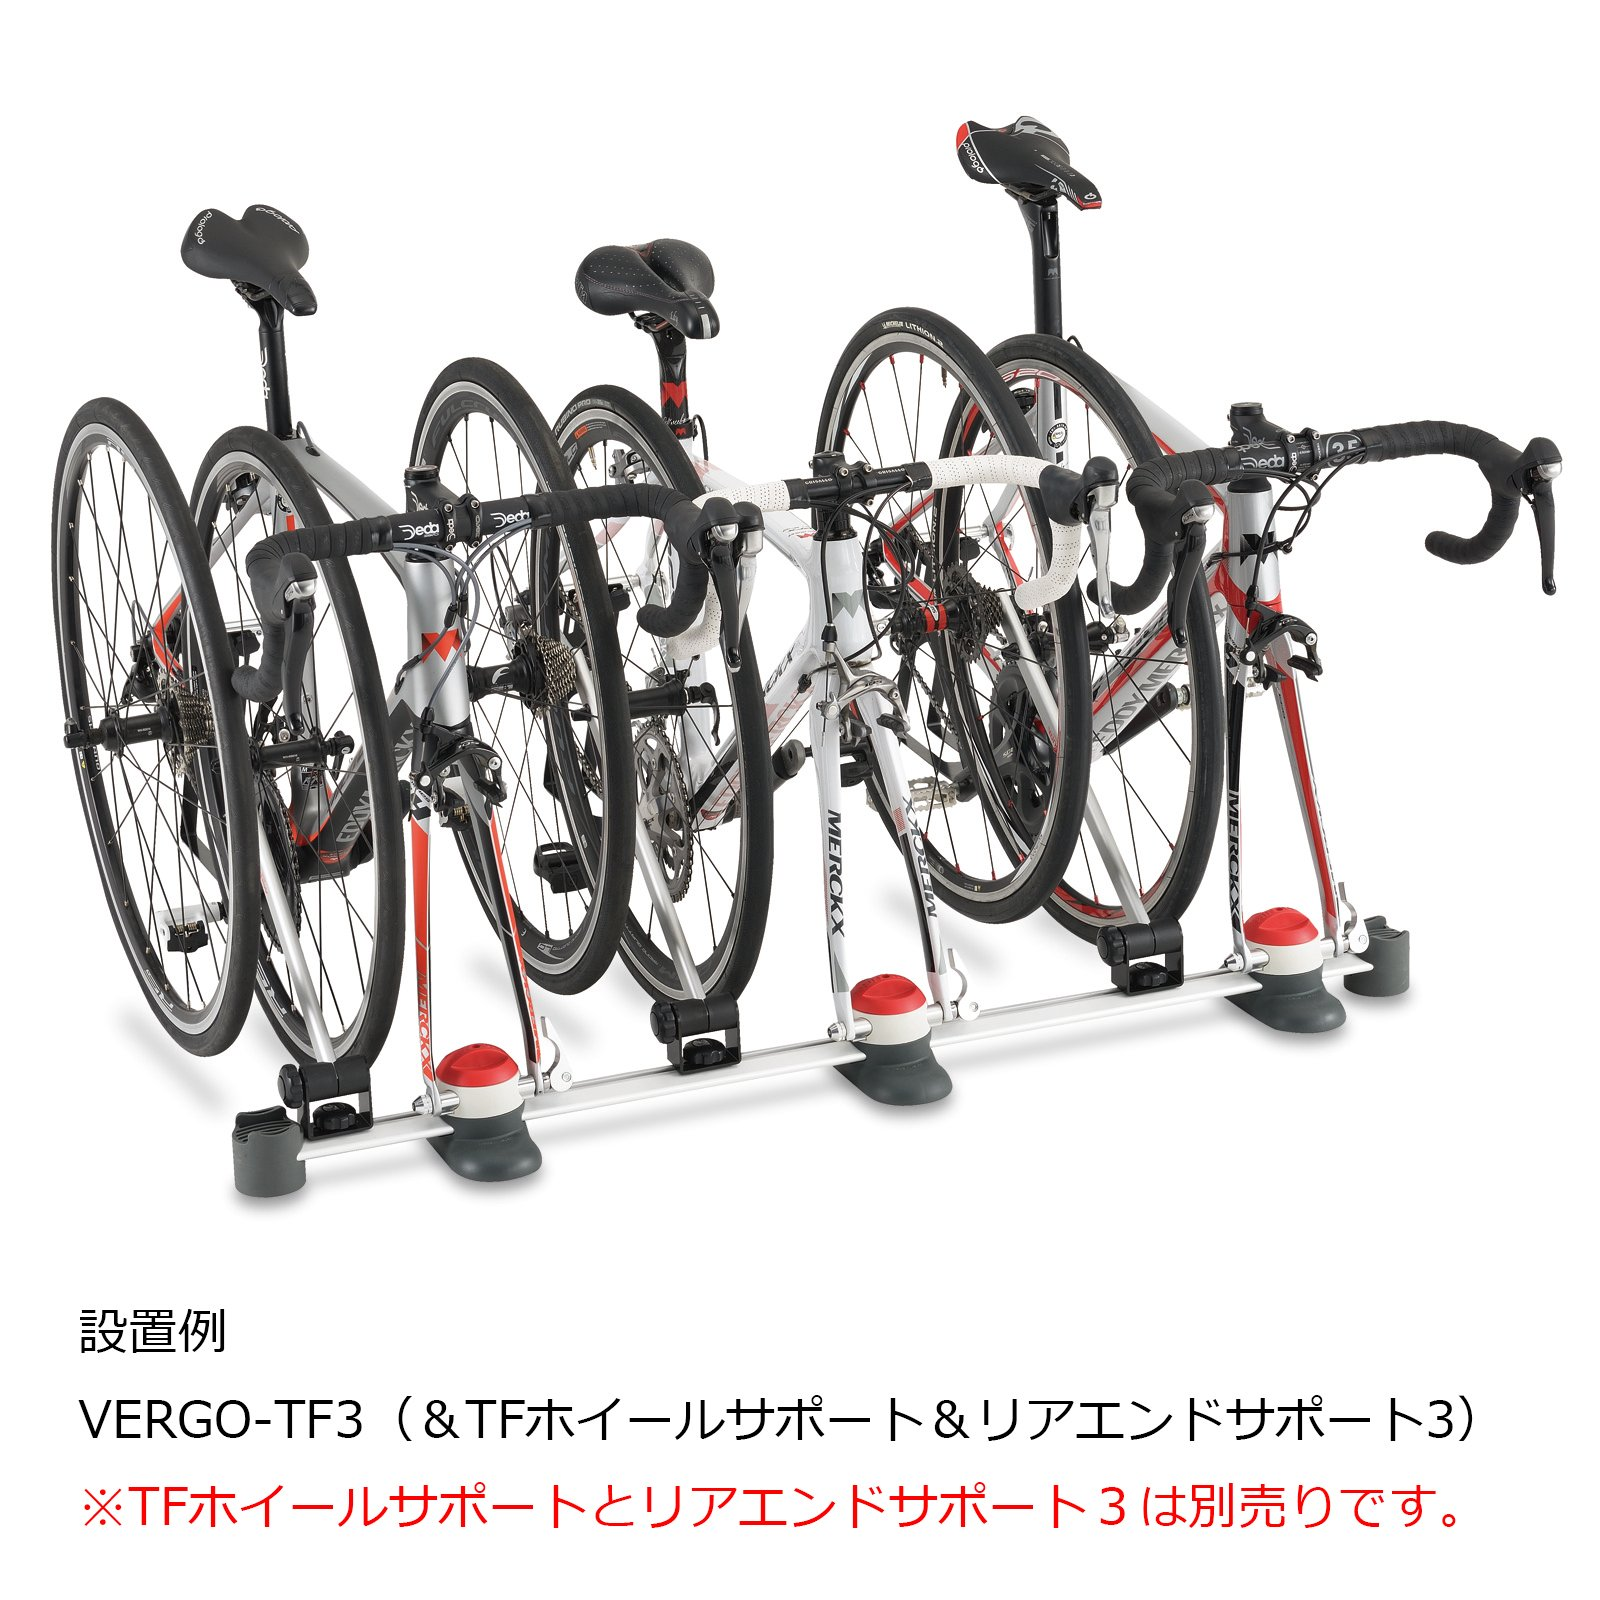 Minoura VERGO-TF3 Interior Car Rack for Bicycles, Brushed Silver by Minoura (Image #2)